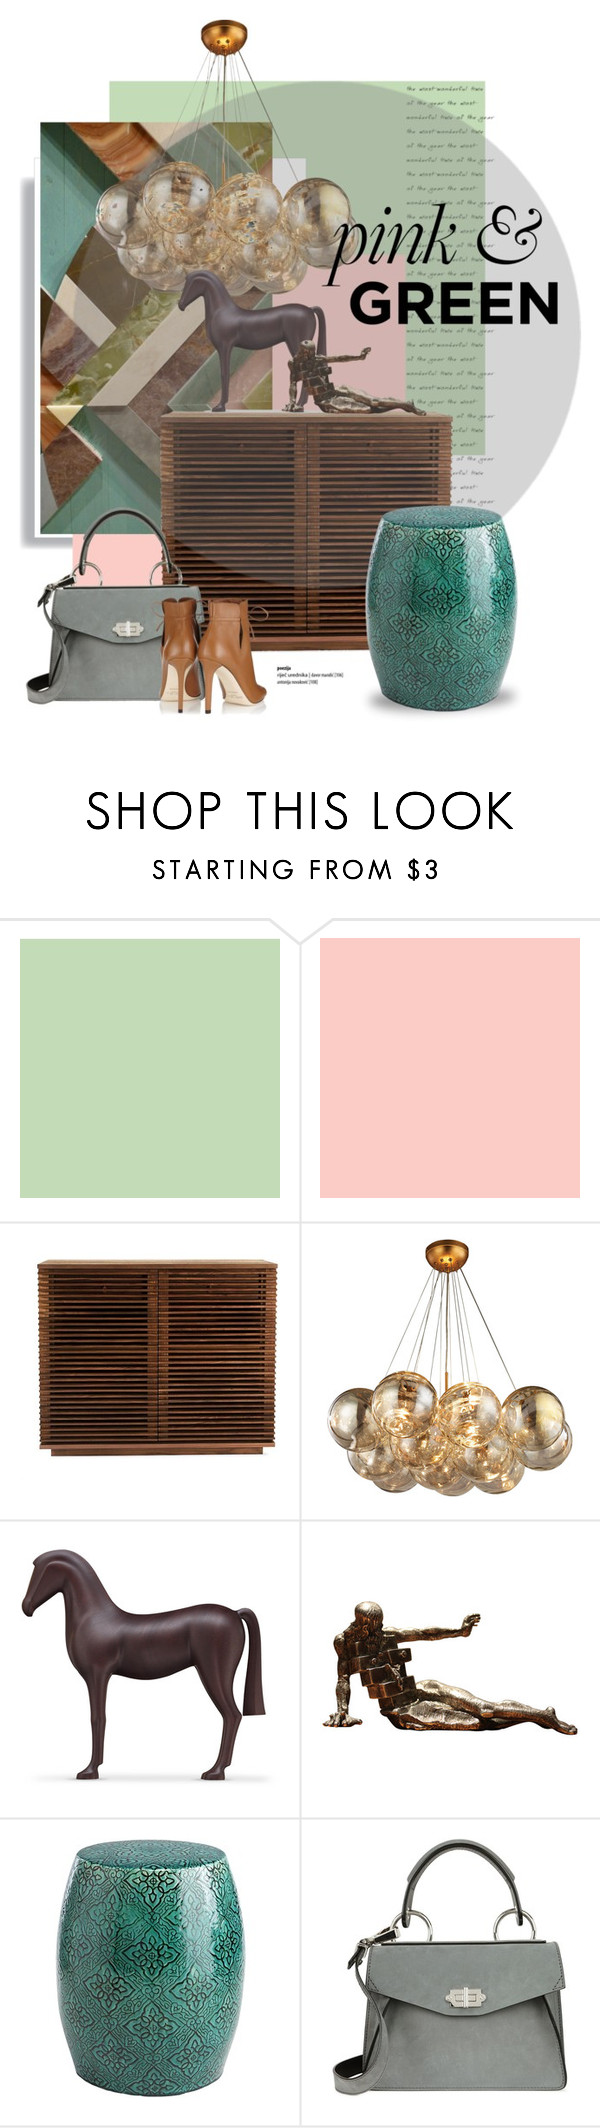 """""""Pink & green..."""" by gloriettequartet ❤ liked on Polyvore featuring interior, interiors, interior design, home, home decor, interior decorating, Budri, Salvador Dali, Pier 1 Imports and Proenza Schouler"""